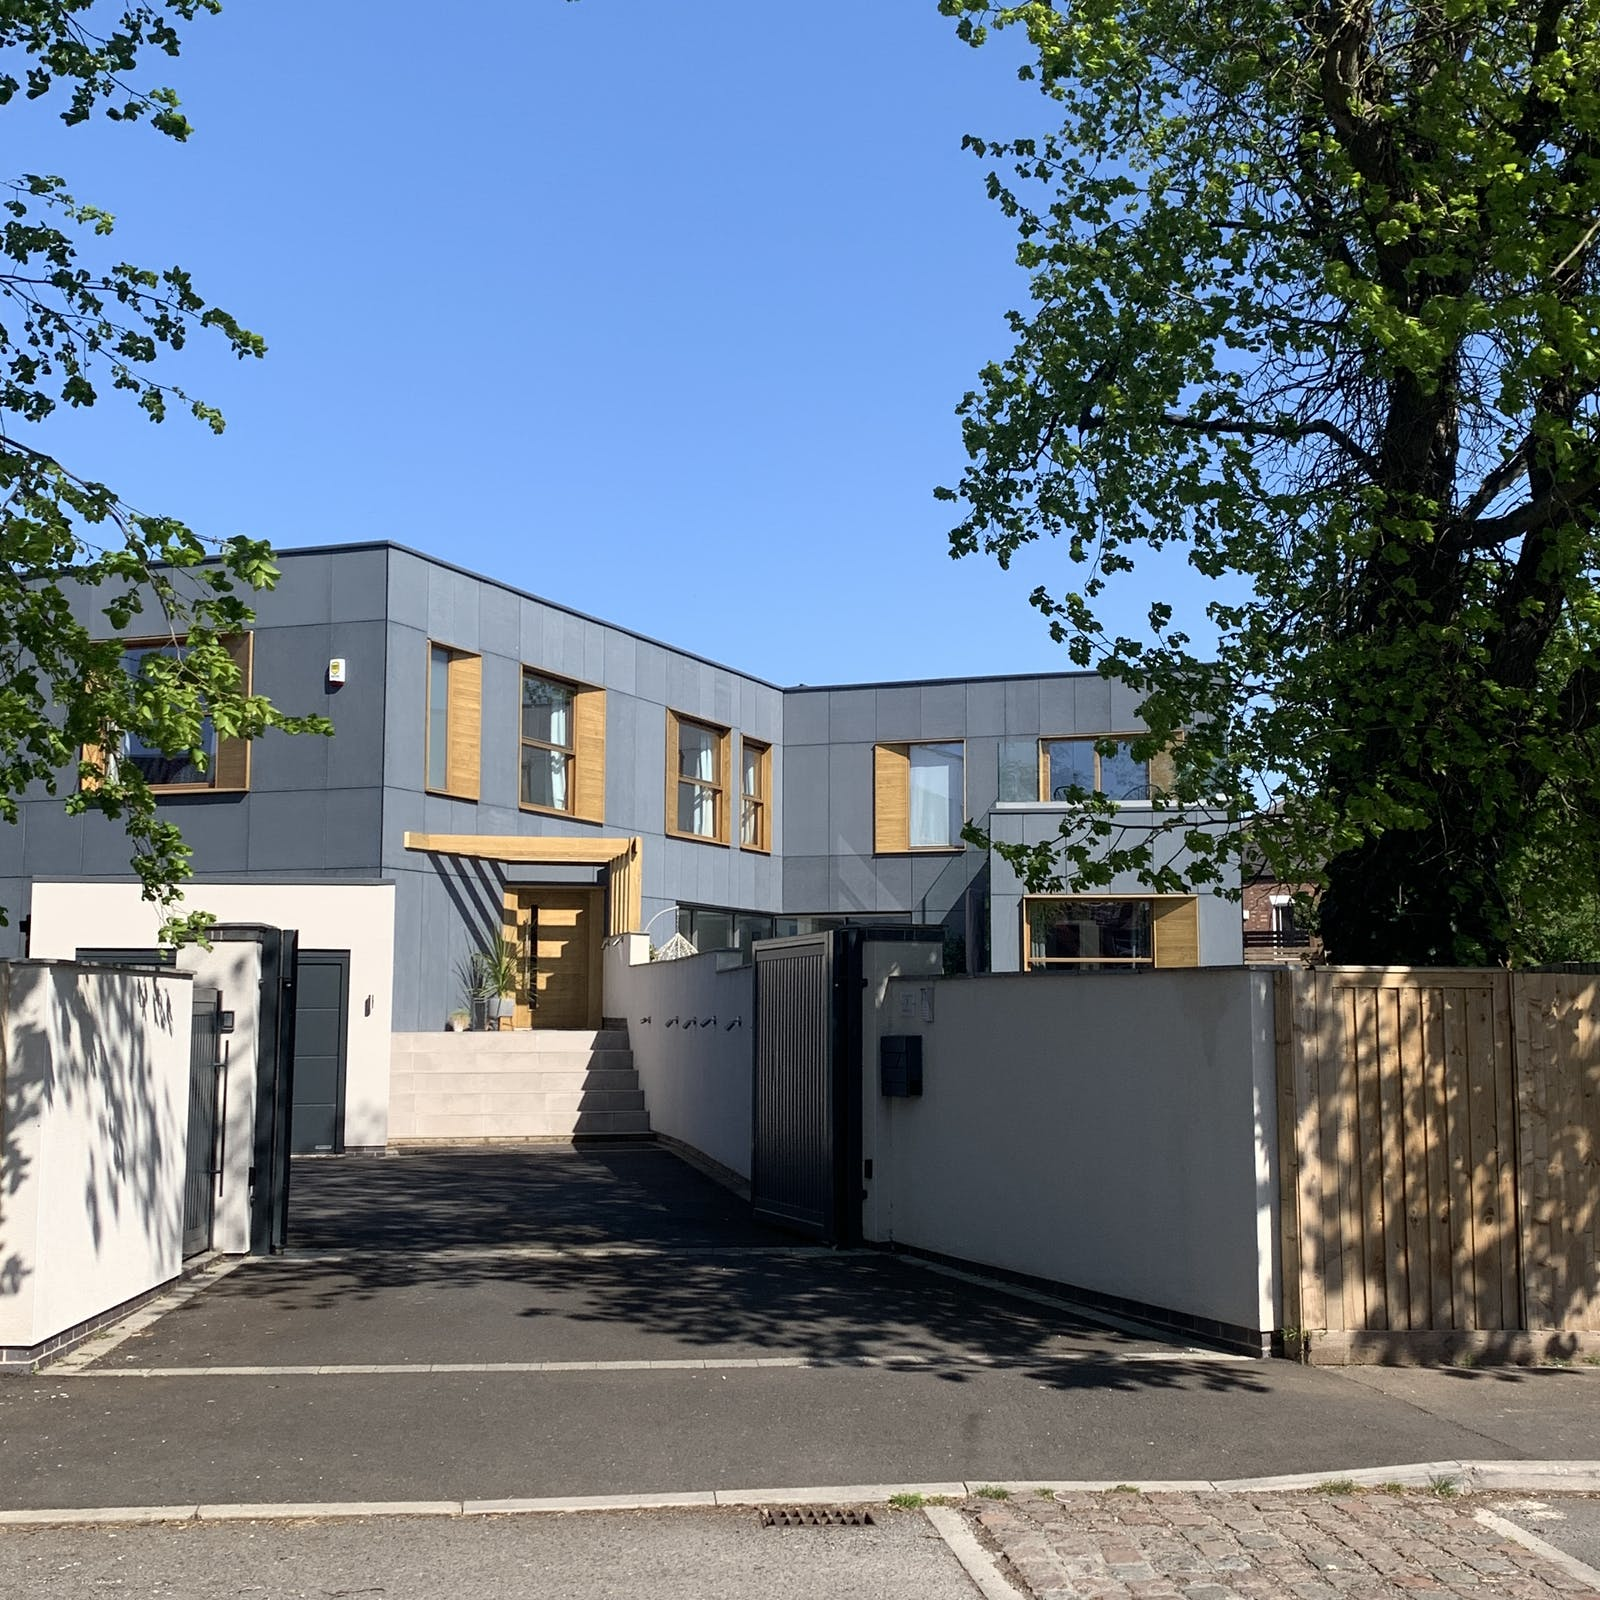 Image of modern house from the exterior driveway